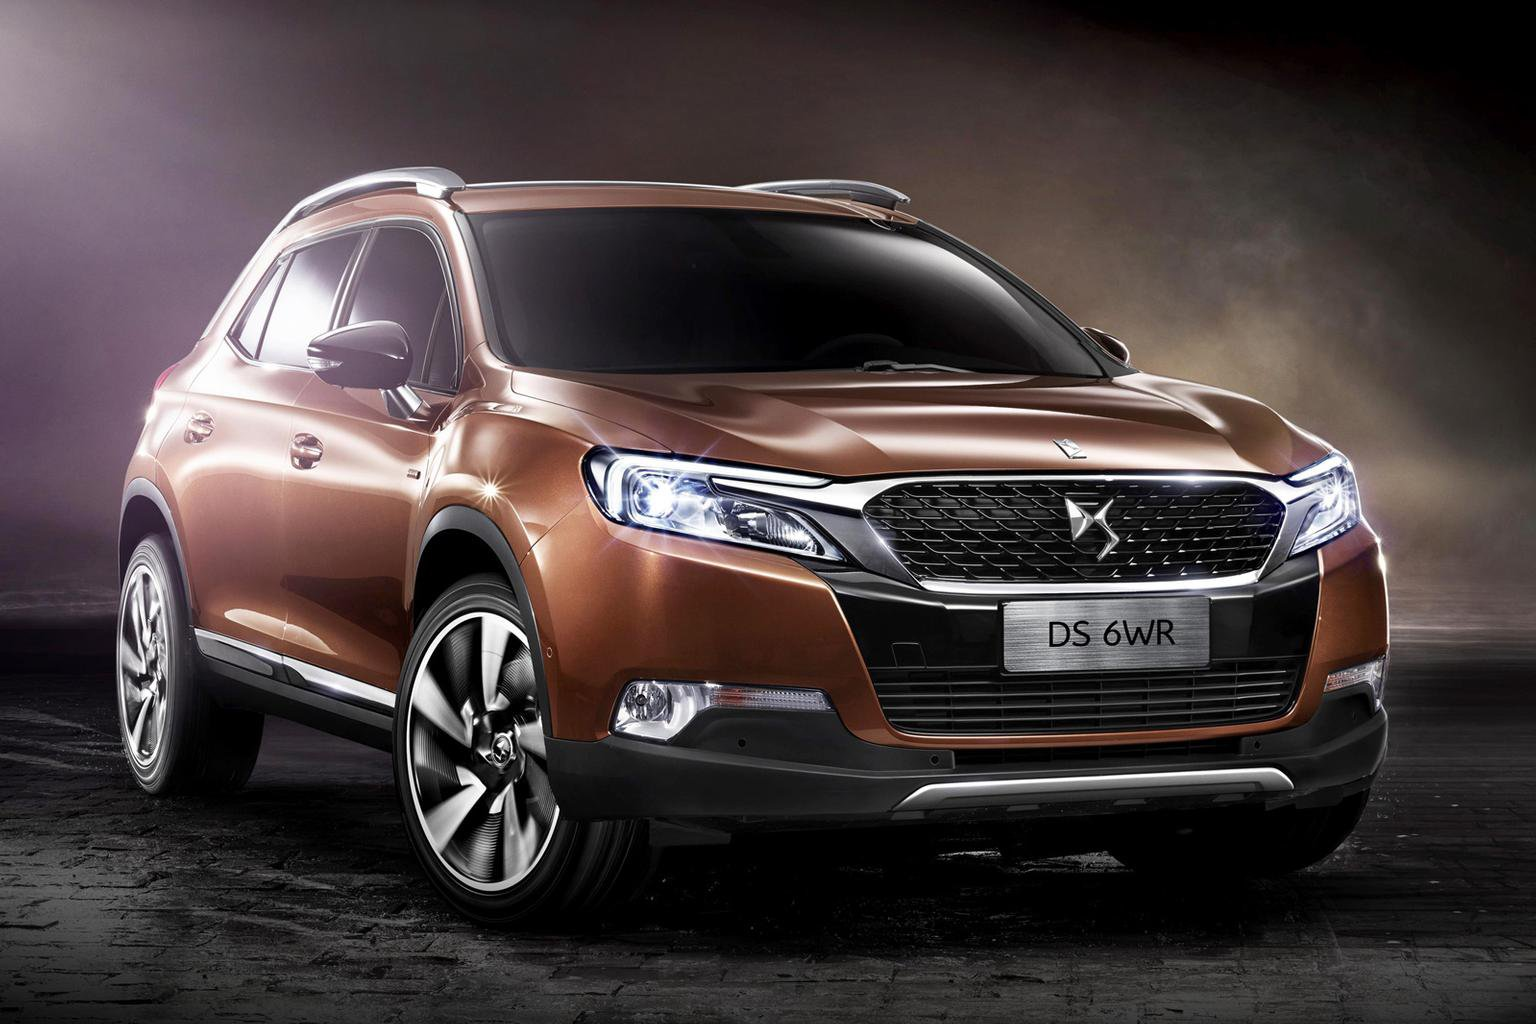 News roundup: Citroen DS 6WR SUV shown and refreshed Jetta at New York